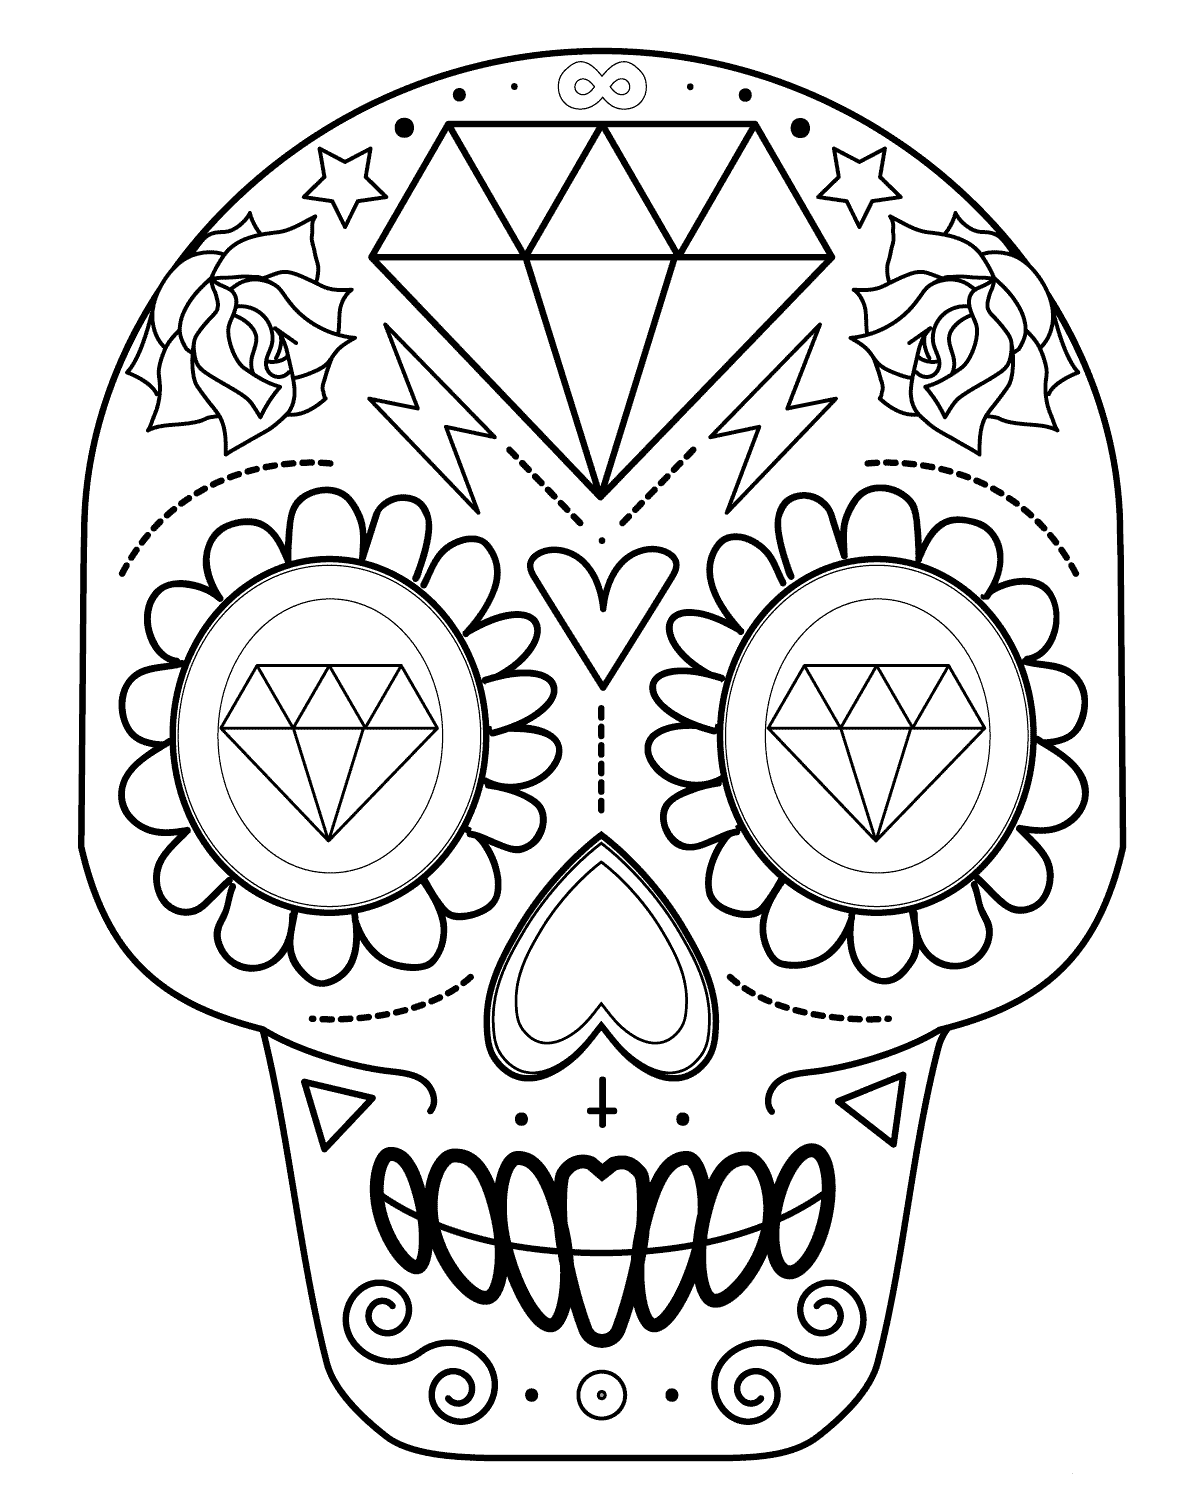 skull colouring pictures free printable skull coloring pages for kids pictures skull colouring